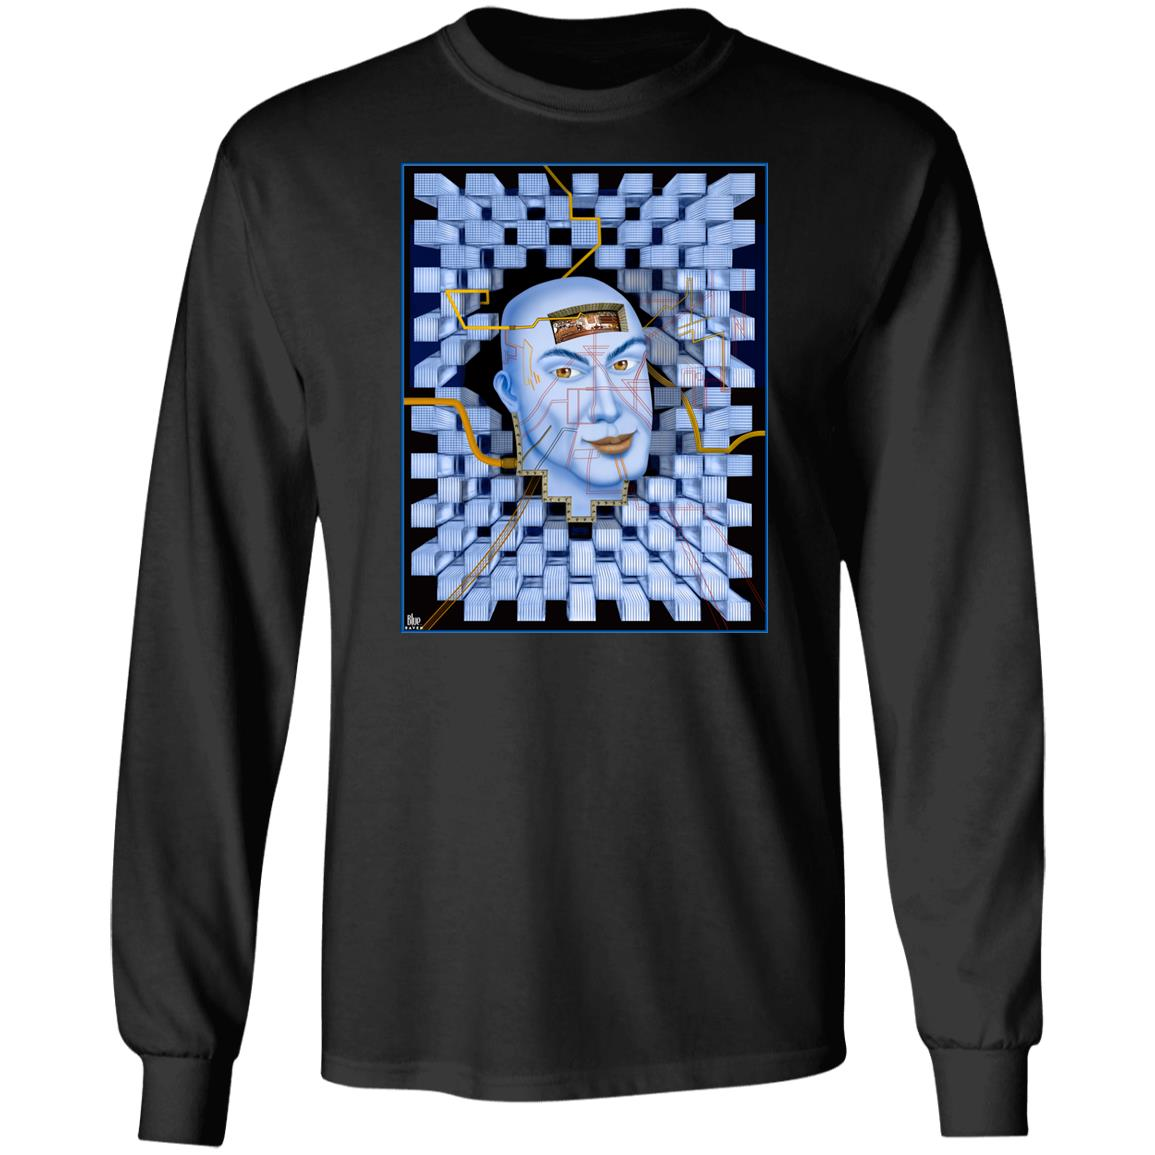 Plugged In - Men's Long Sleeve T-Shirt